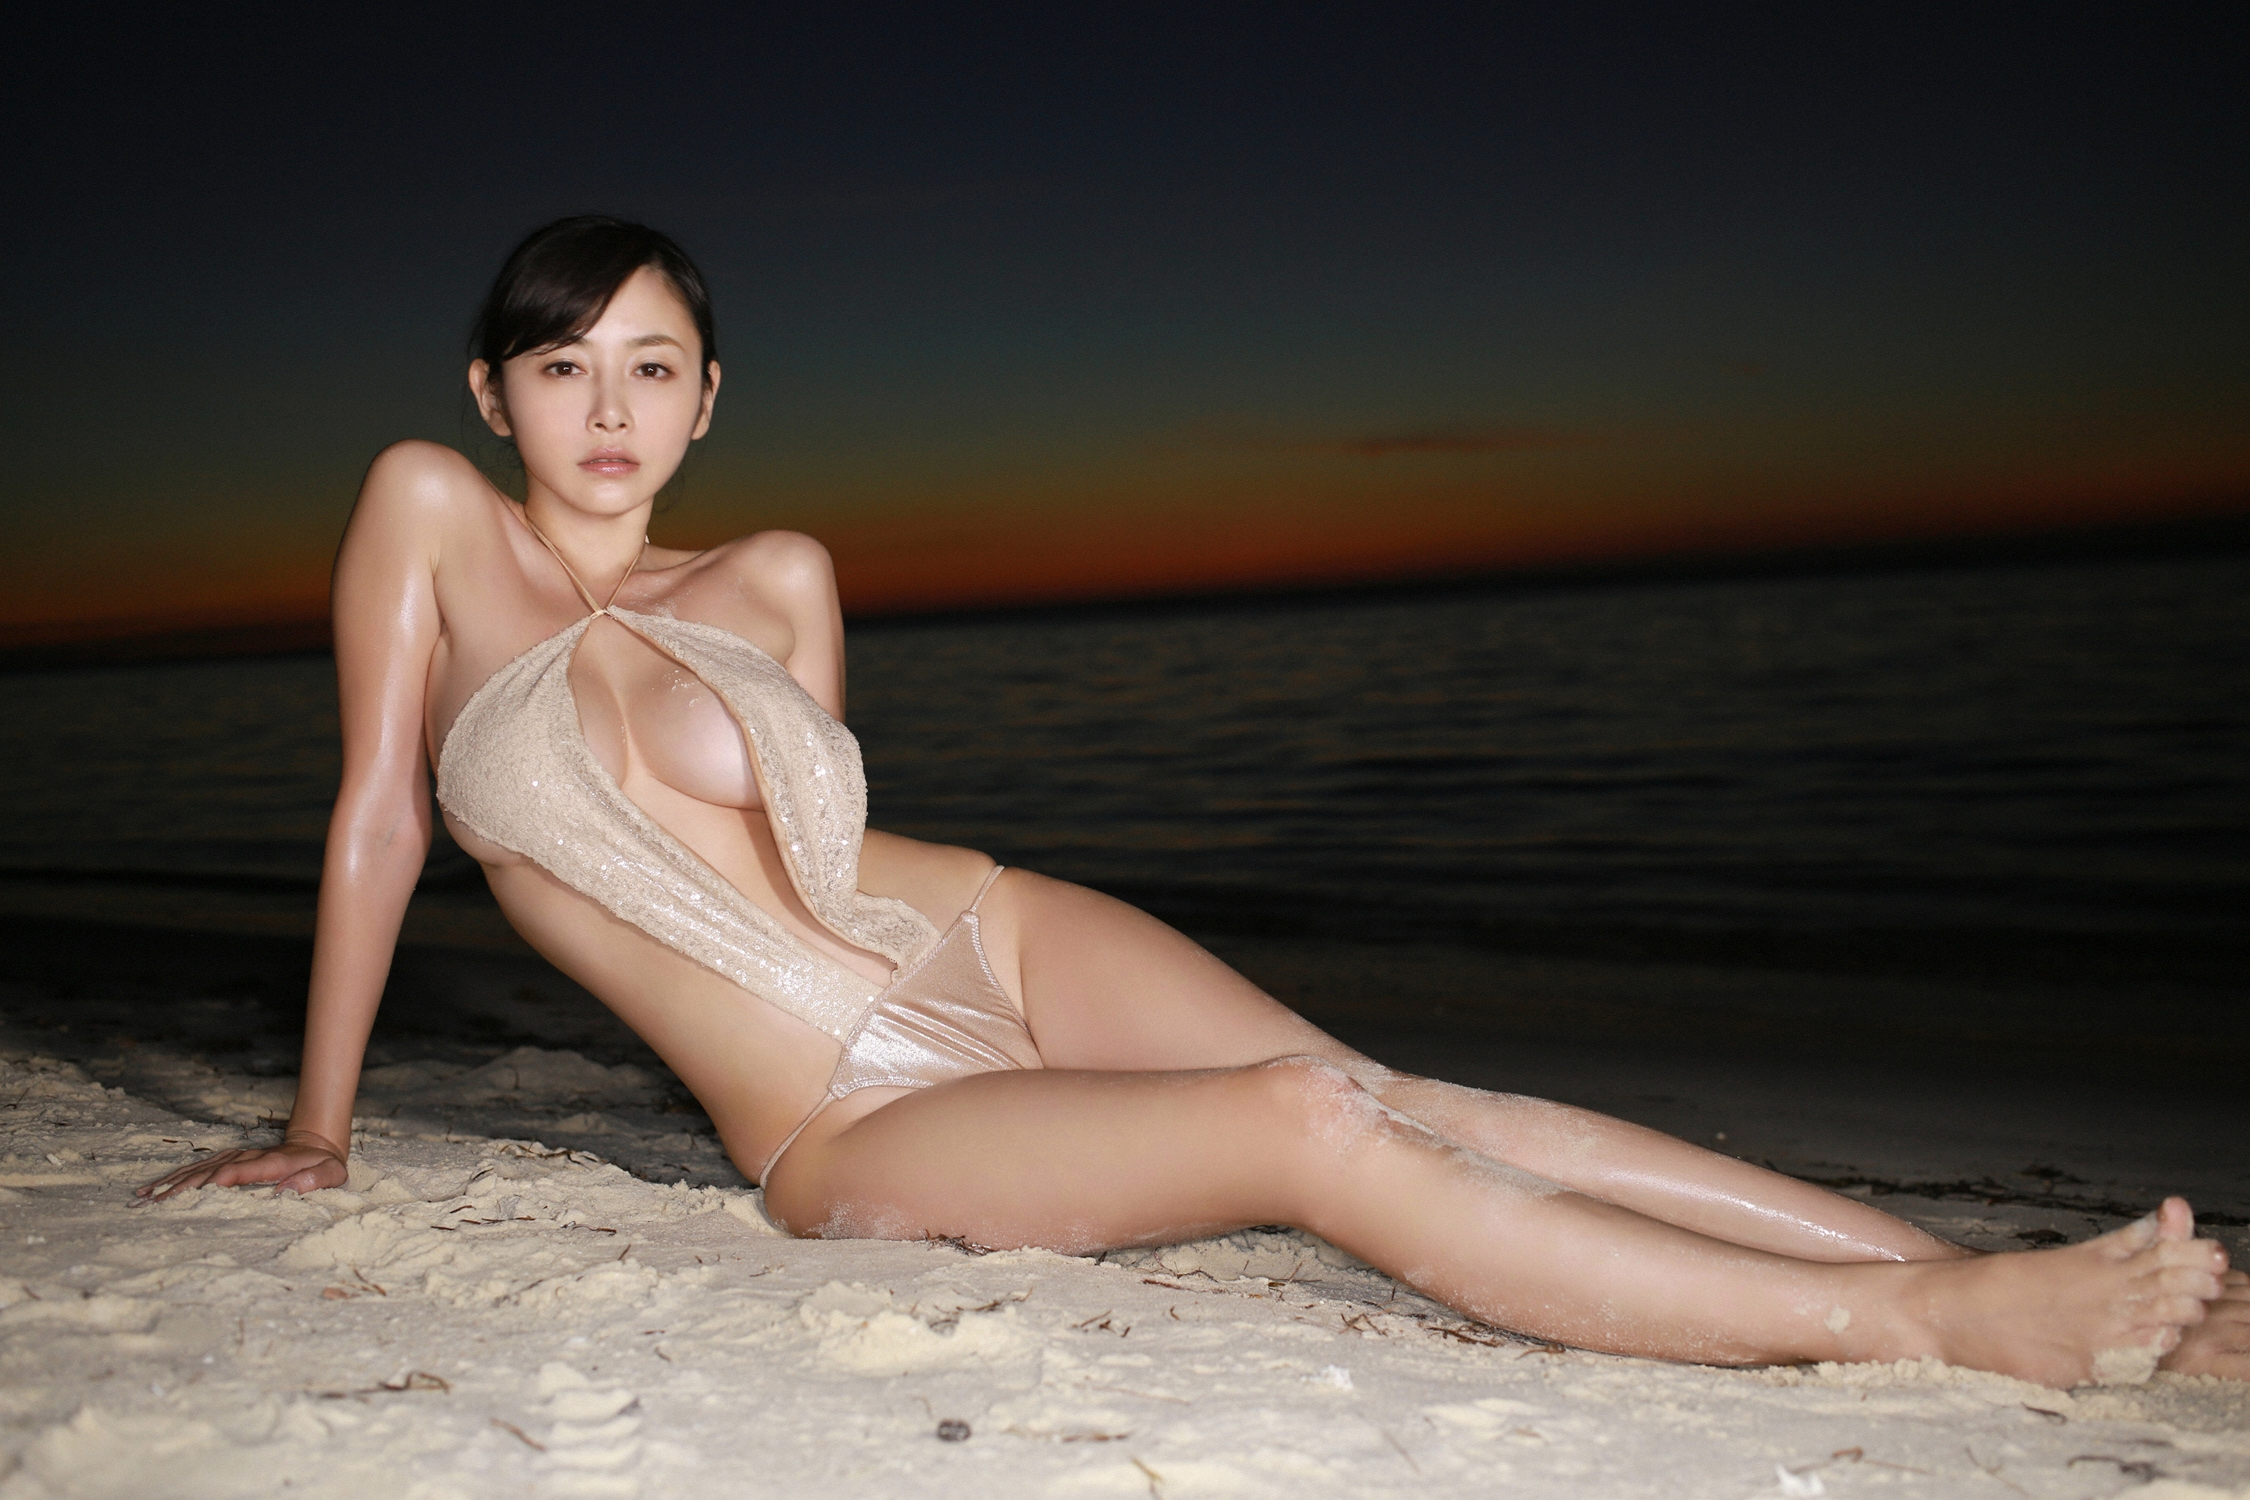 杉原杏璃 Anri Sugihara YS Web Vol 655 Pictures 72